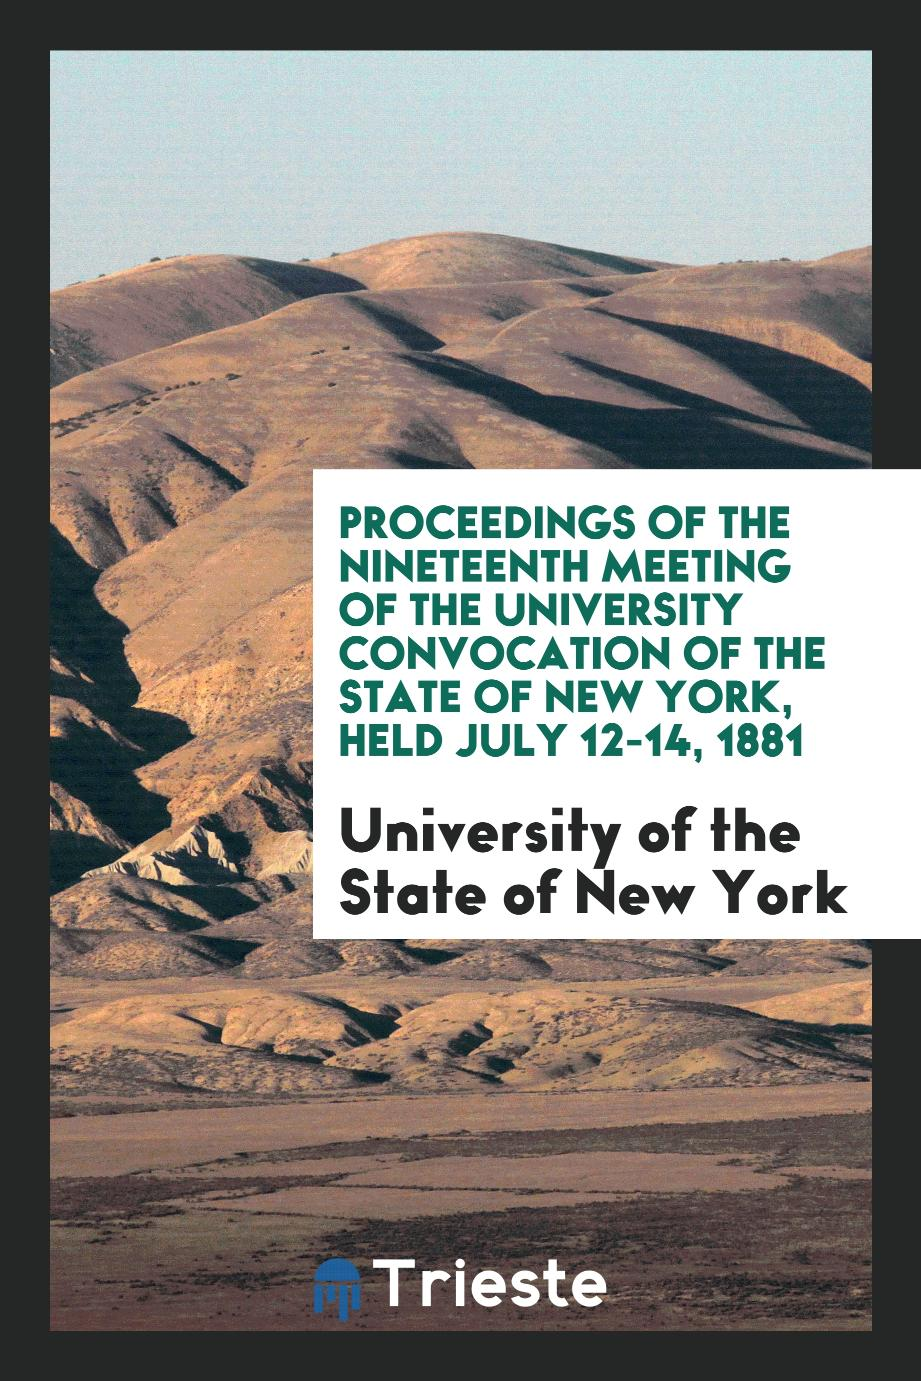 University of the State of New York - Proceedings of the Nineteenth Meeting of the University Convocation of the State of New York, Held July 12-14, 1881